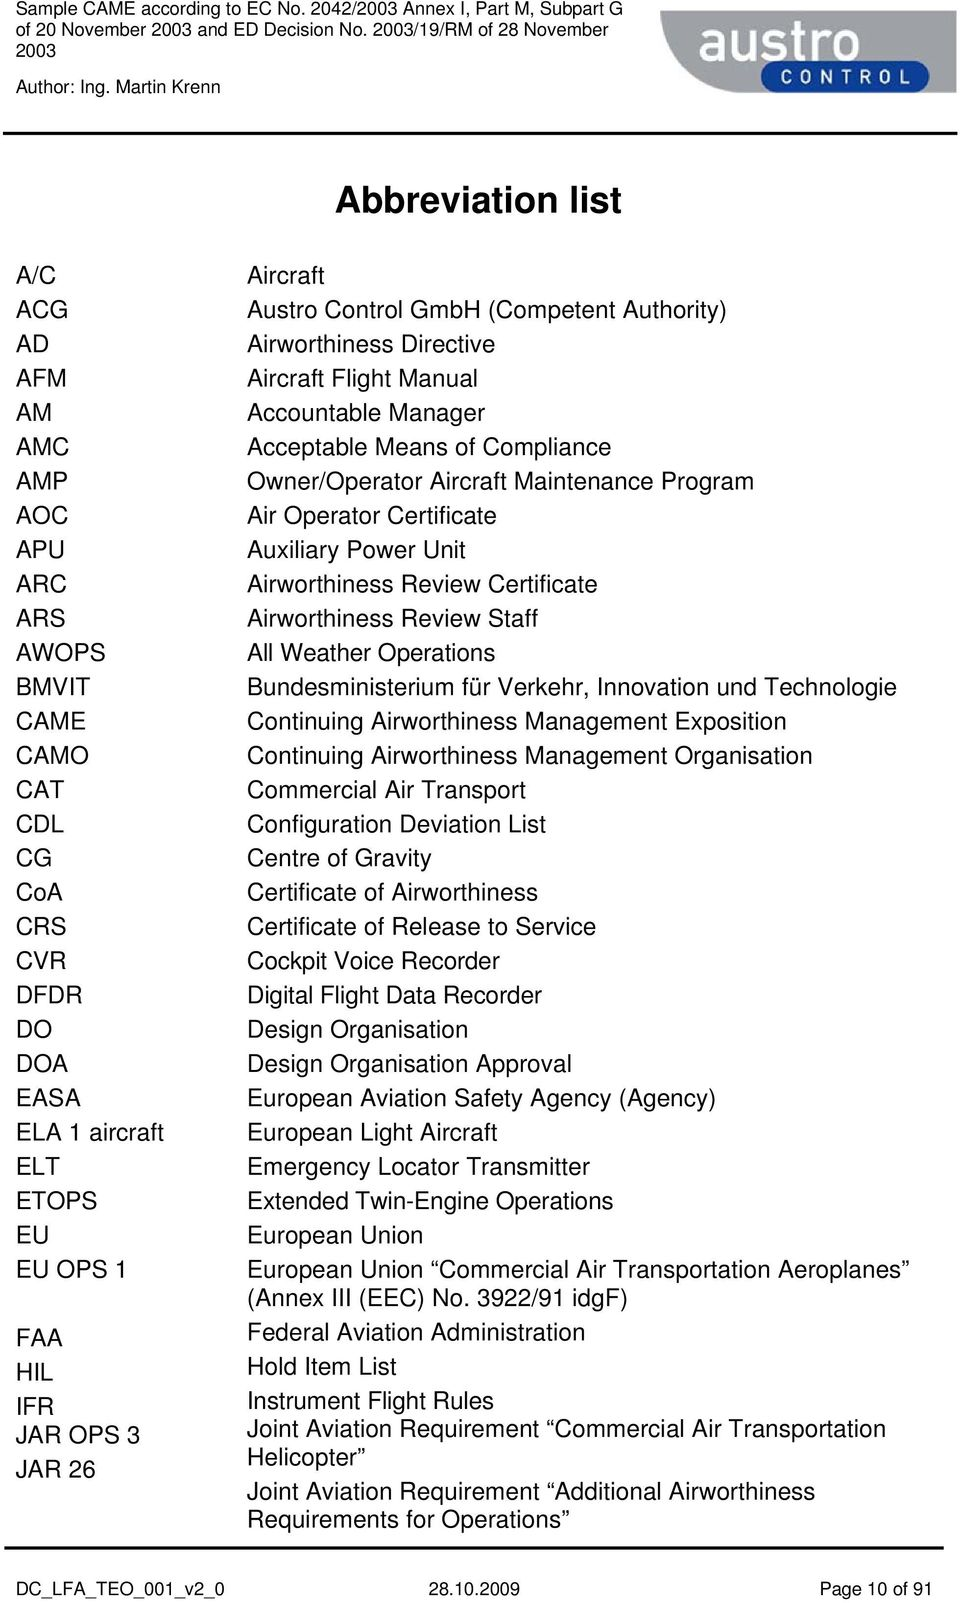 Sample continuing airworthiness management exposition came certificate auxiliary power unit airworthiness review certificate airworthiness review staff all weather operations bundesministerium fr verkehr yadclub